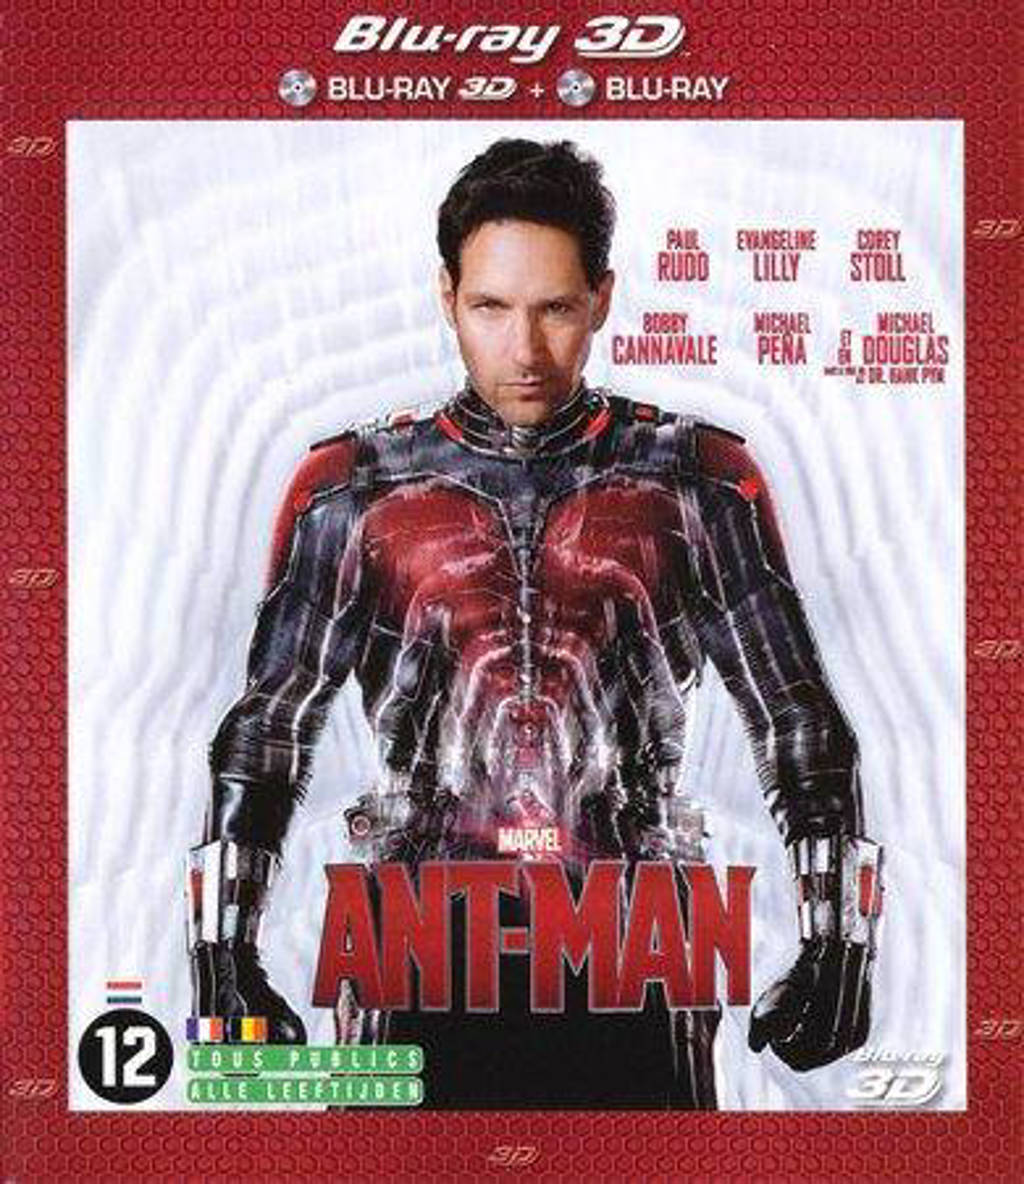 Ant man (3D) (Blu-ray)